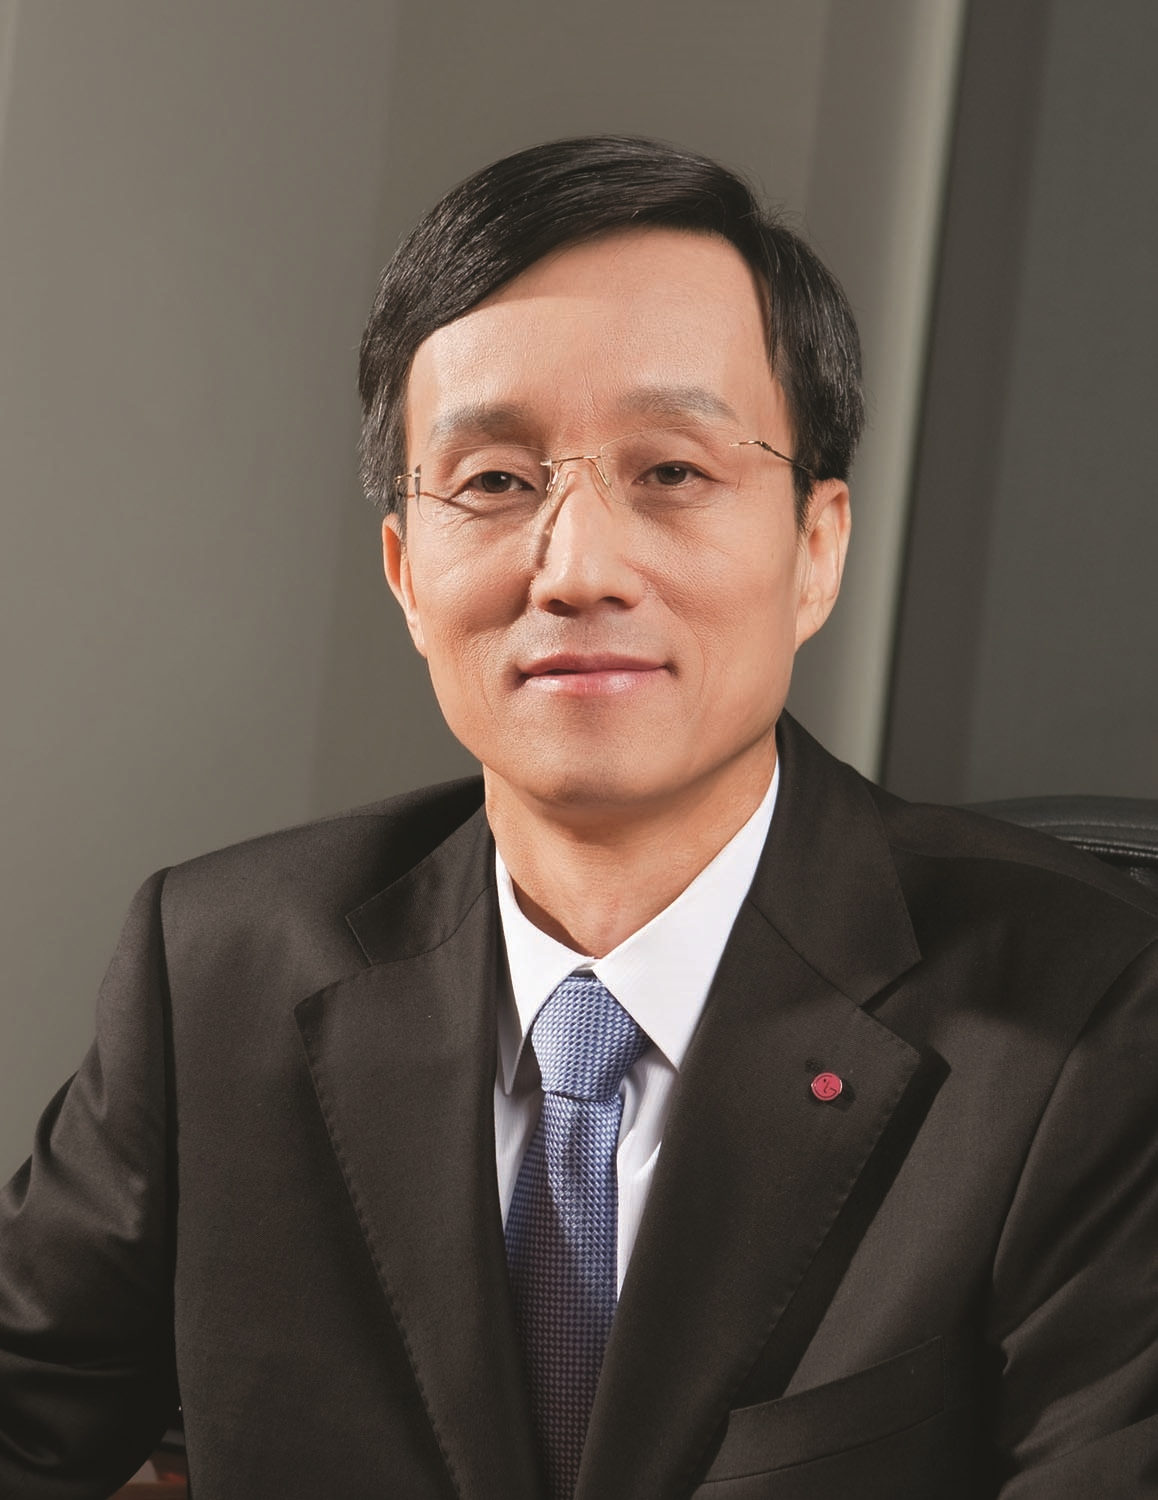 A headshot of Jong-seok Park, president and chief executive officer of the LG Mobile Communication Company.